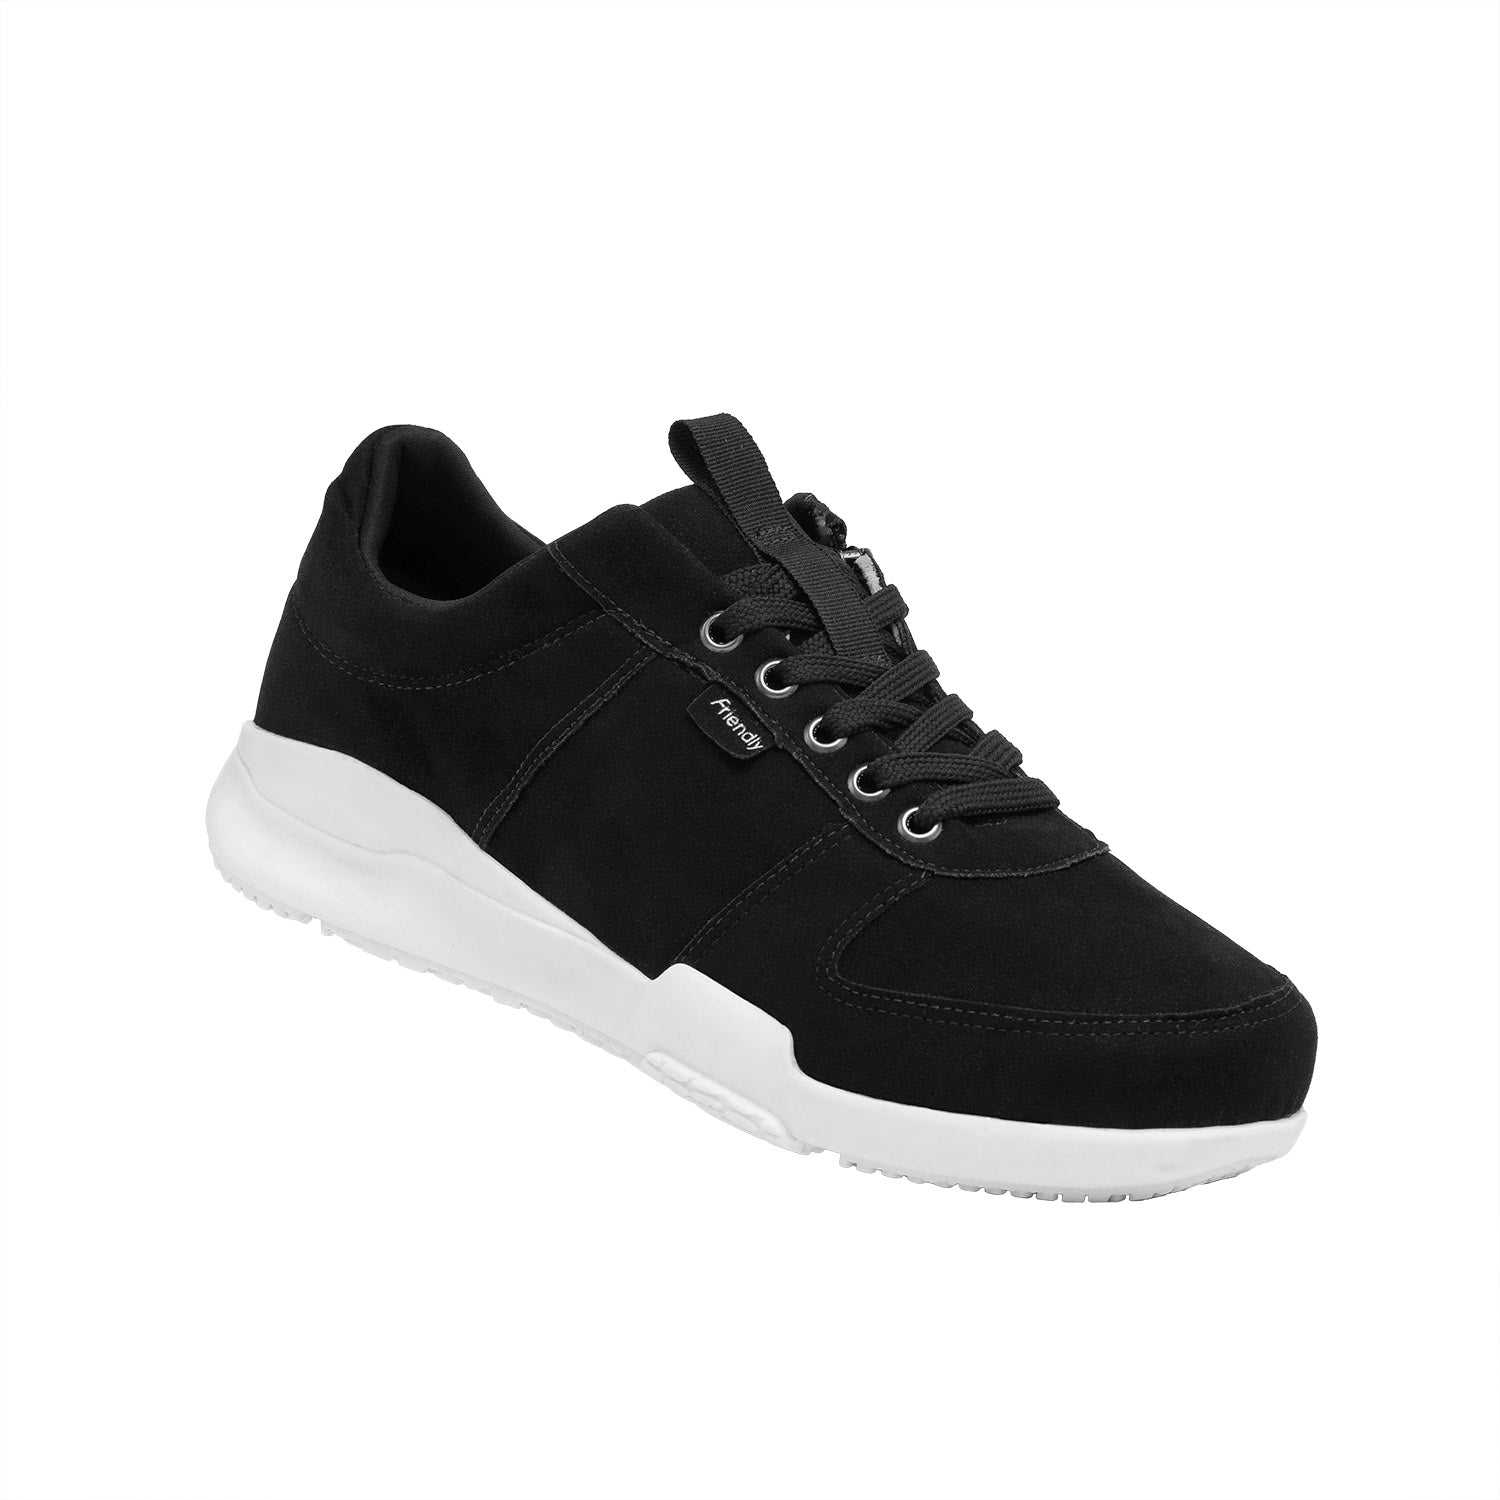 Men's Medimoto Low-Top / Midnight Black Micro-Suede Shoe